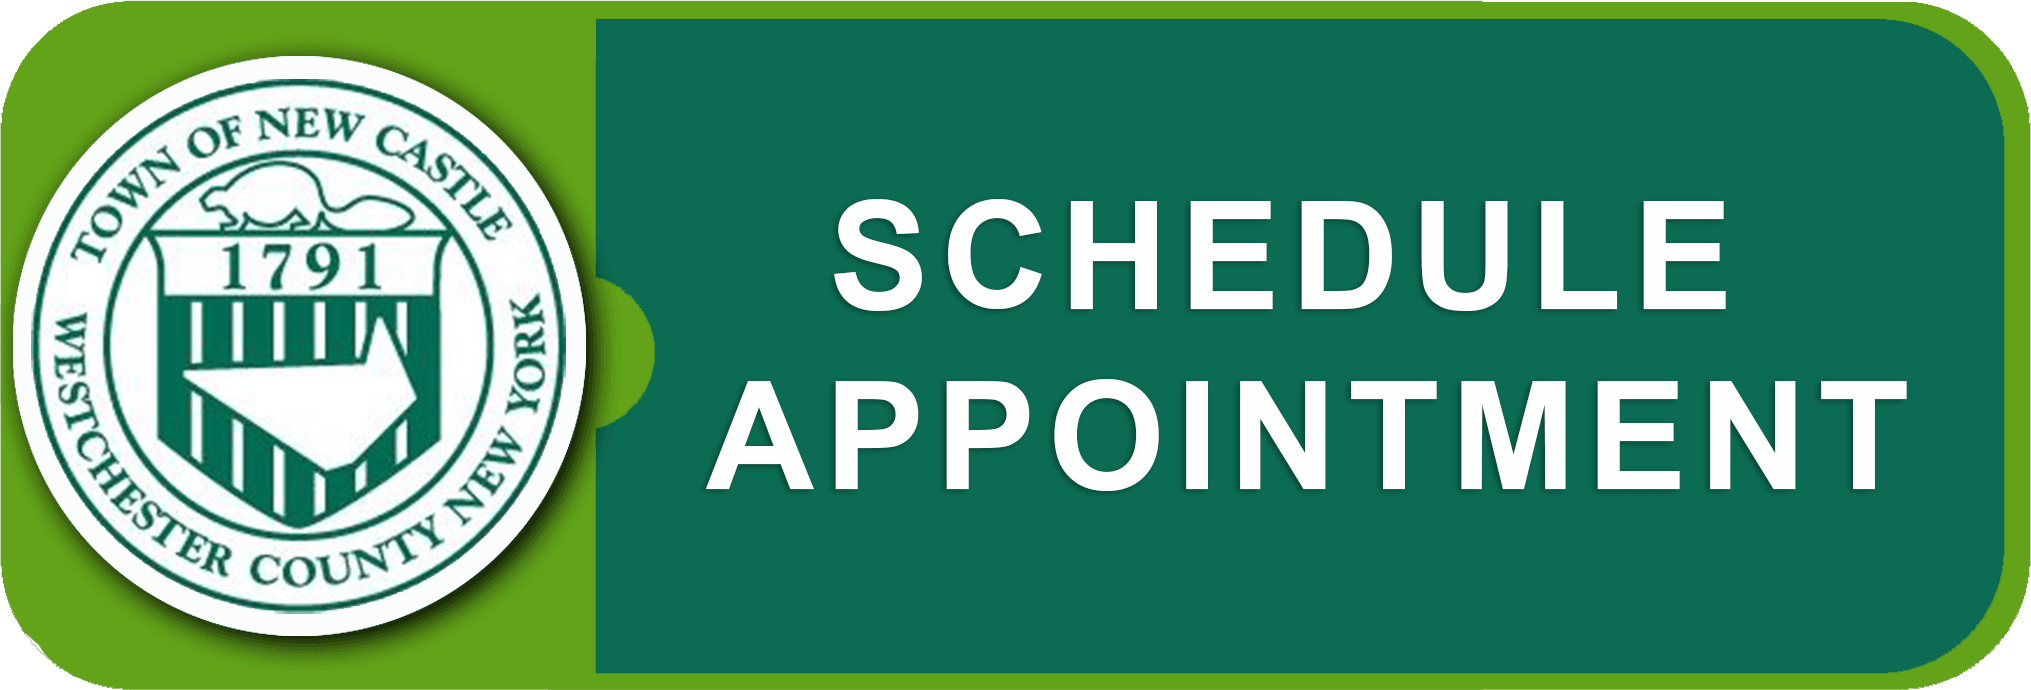 SCHEDULE-APPOINTMENT Icon